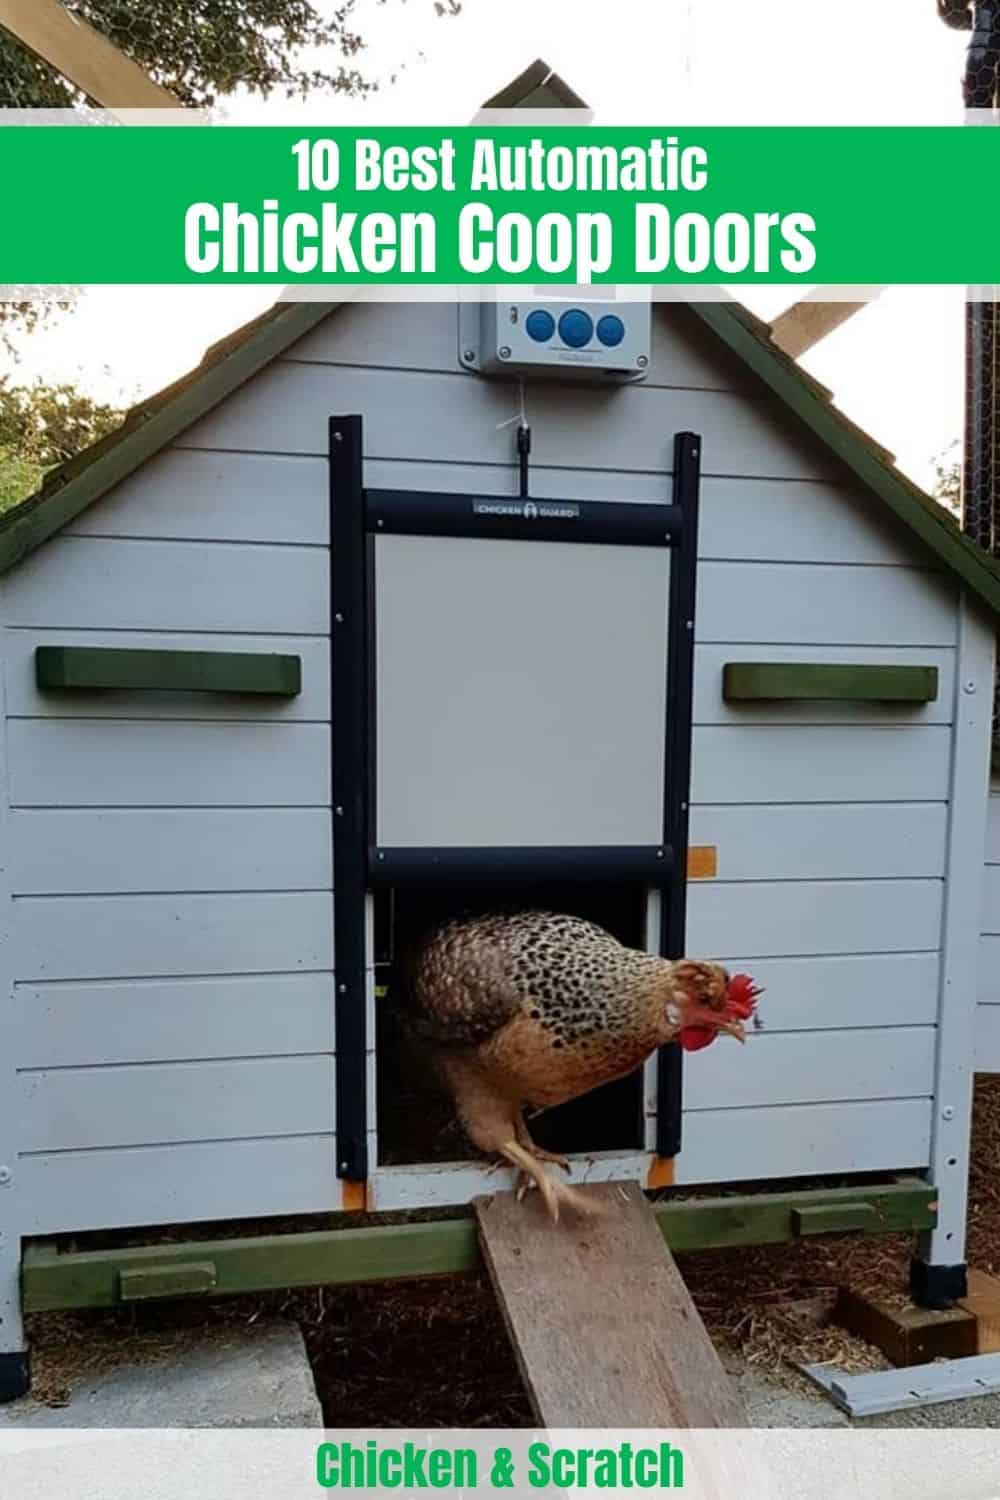 best automatic chicken door ChickenGuard